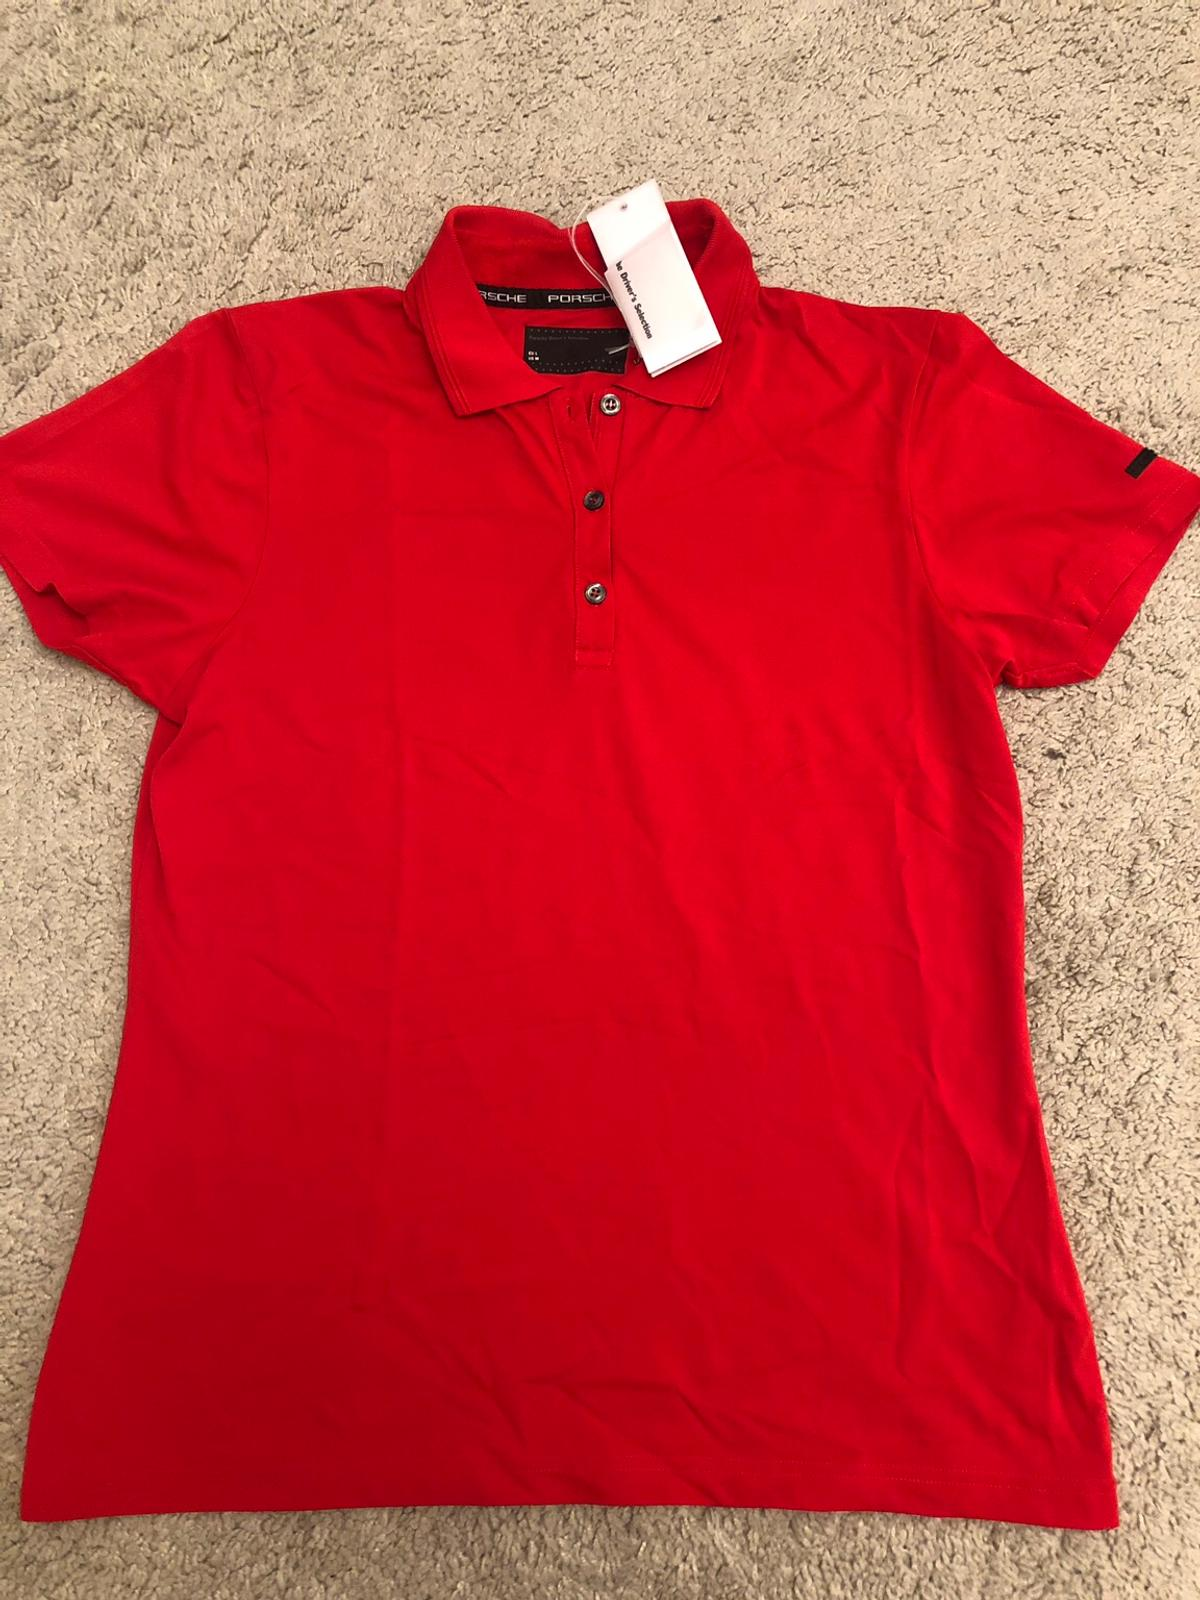 b18937818 Porsche Driver's Selection ladies polo shirt in Leigh on Sea for ...